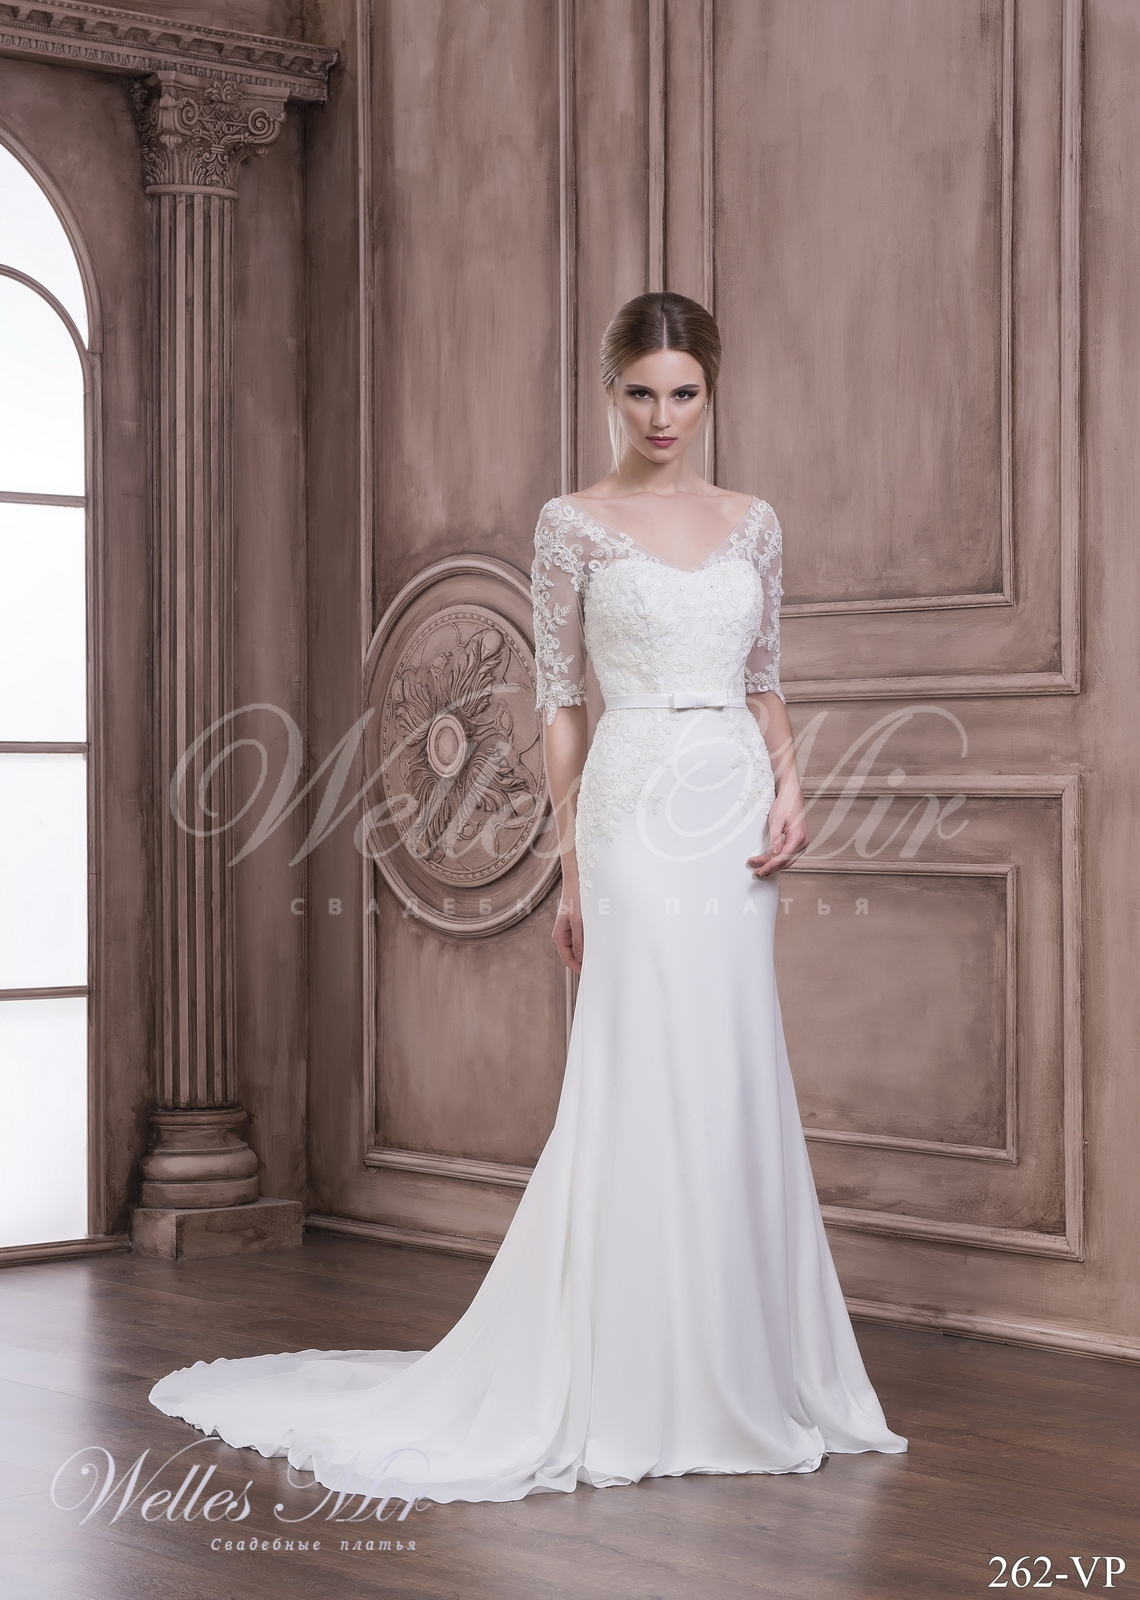 Wedding dresses 262-VP